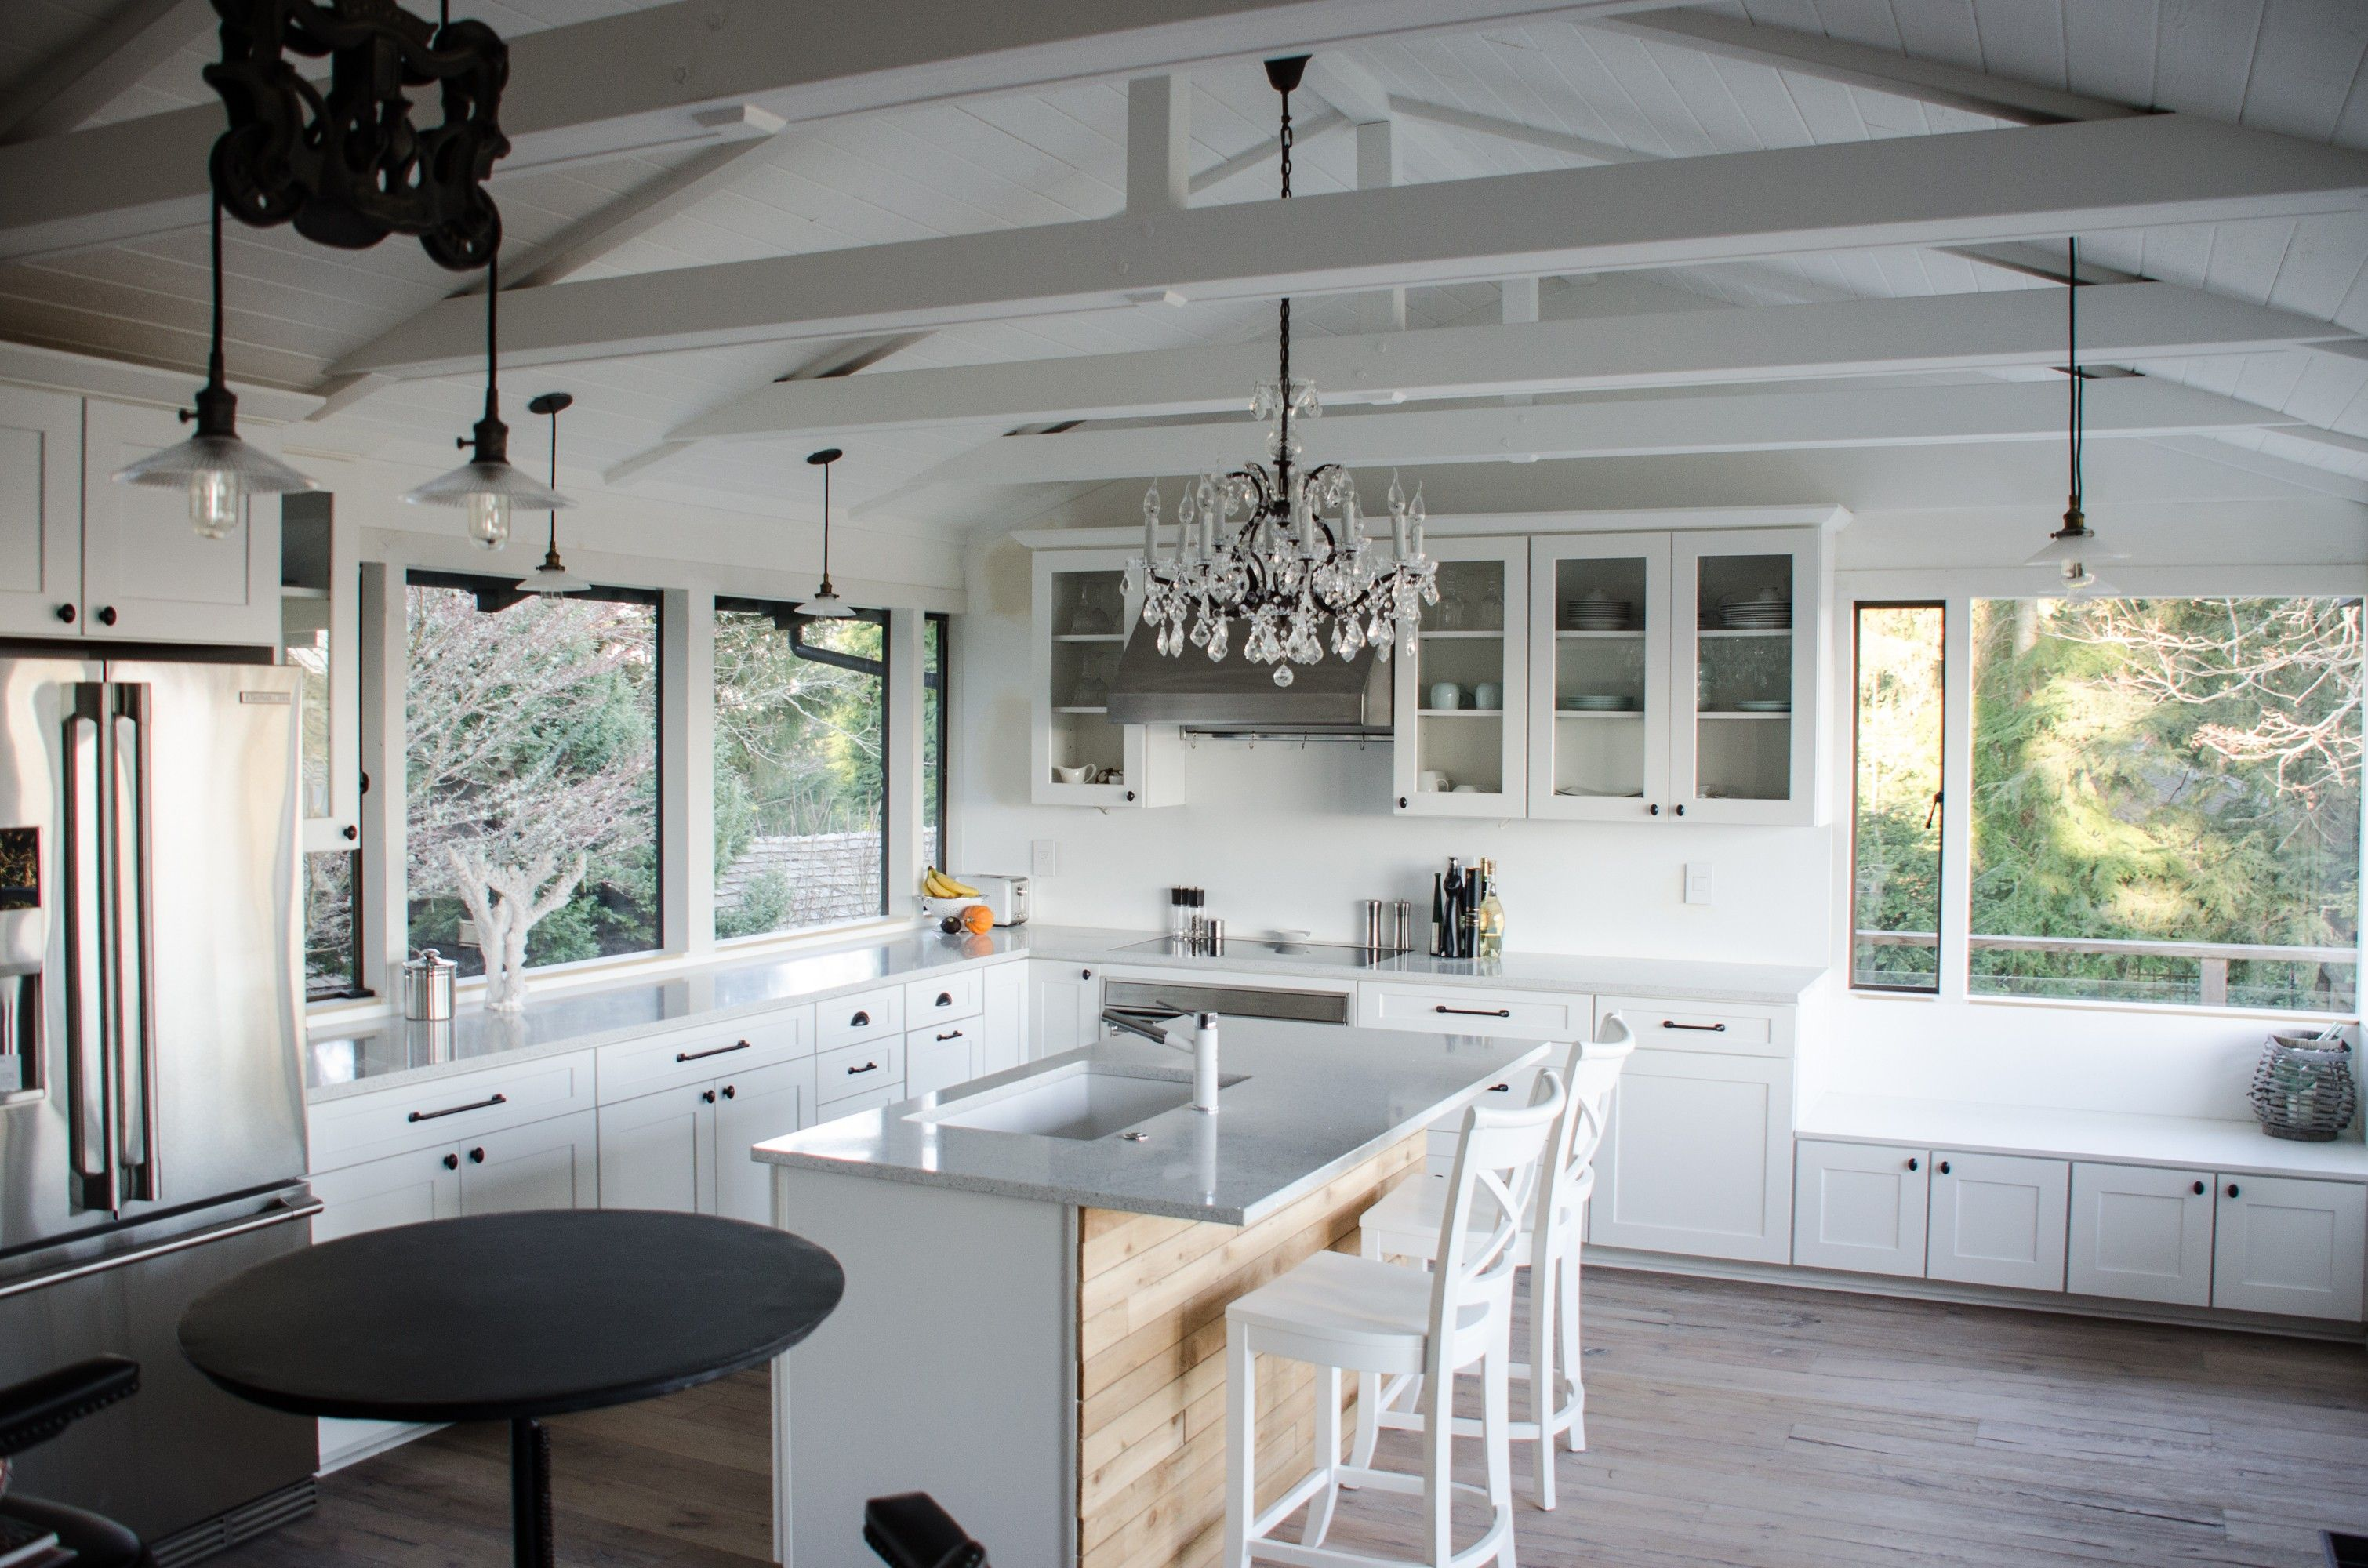 White kitchen with a chandelier great contract with more rustic